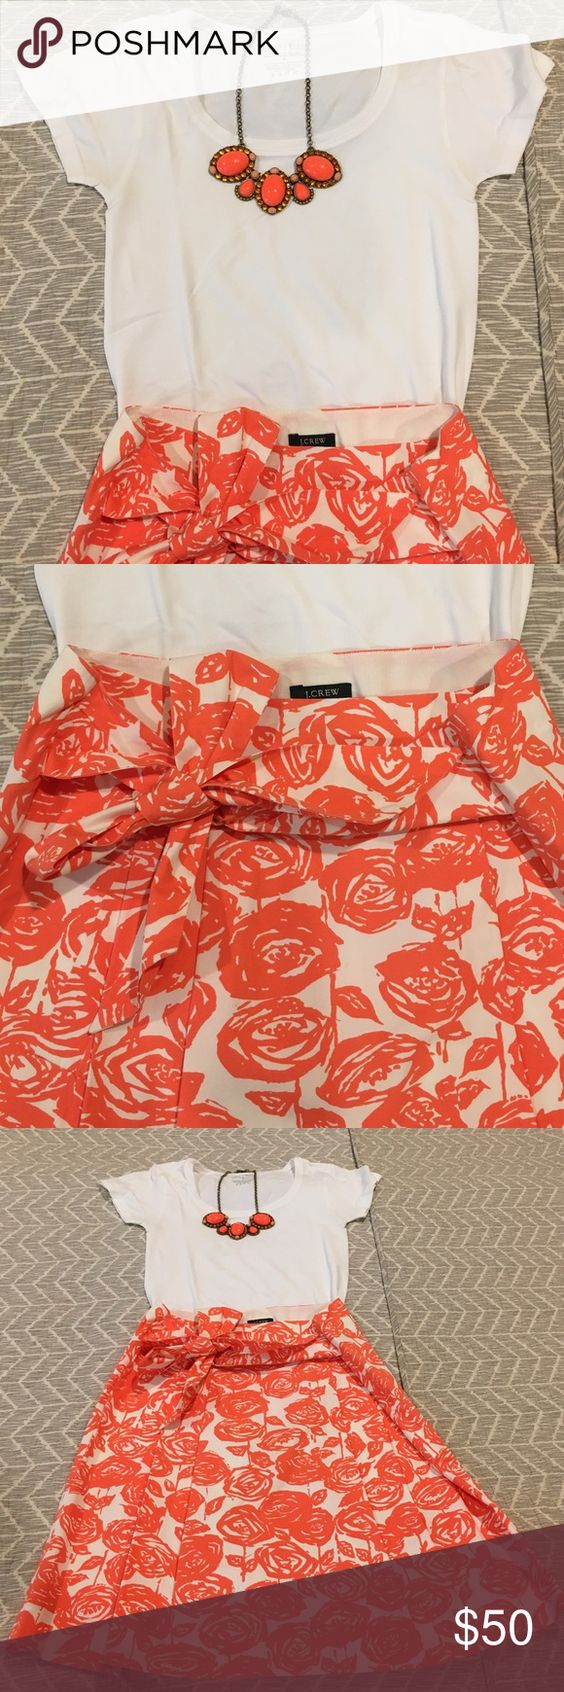 J Crew pleated skirt with white top! J Crew orange and white pleated skirt.  It has a zipper at the side and the pieces of fabric for the bow come from the sides of the skirt.  It is light weight and perfect for work, or a summer party!  It has been worn and has a VERY light spot on one of the pieces of fabric, which is not visible when worn.  It just came back from the dry cleaners.  The top is White House Black Market and a size s.  It is 95% Nylon and 5% Spandex. J. Crew Skirts Midi